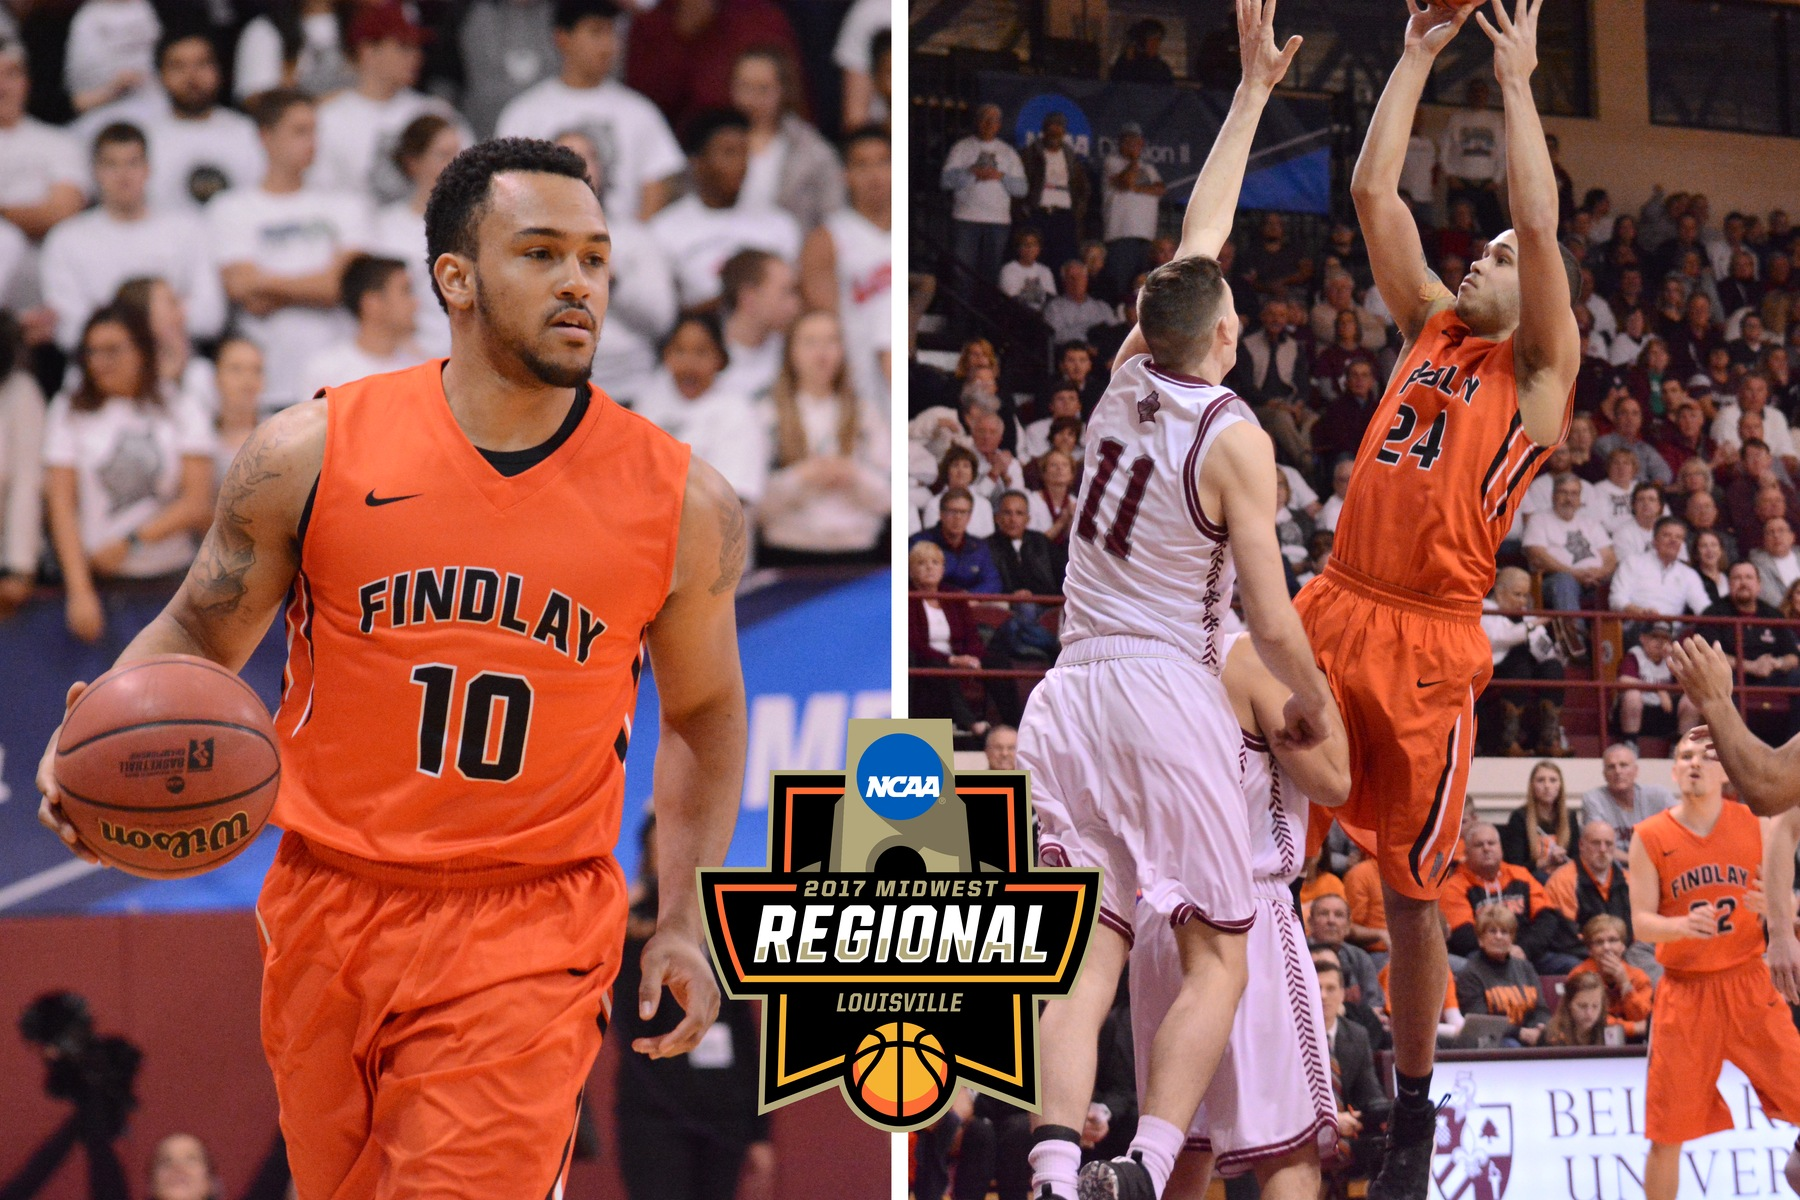 #25 Oilers Fall in Sweet 16 to #2 Bellarmine